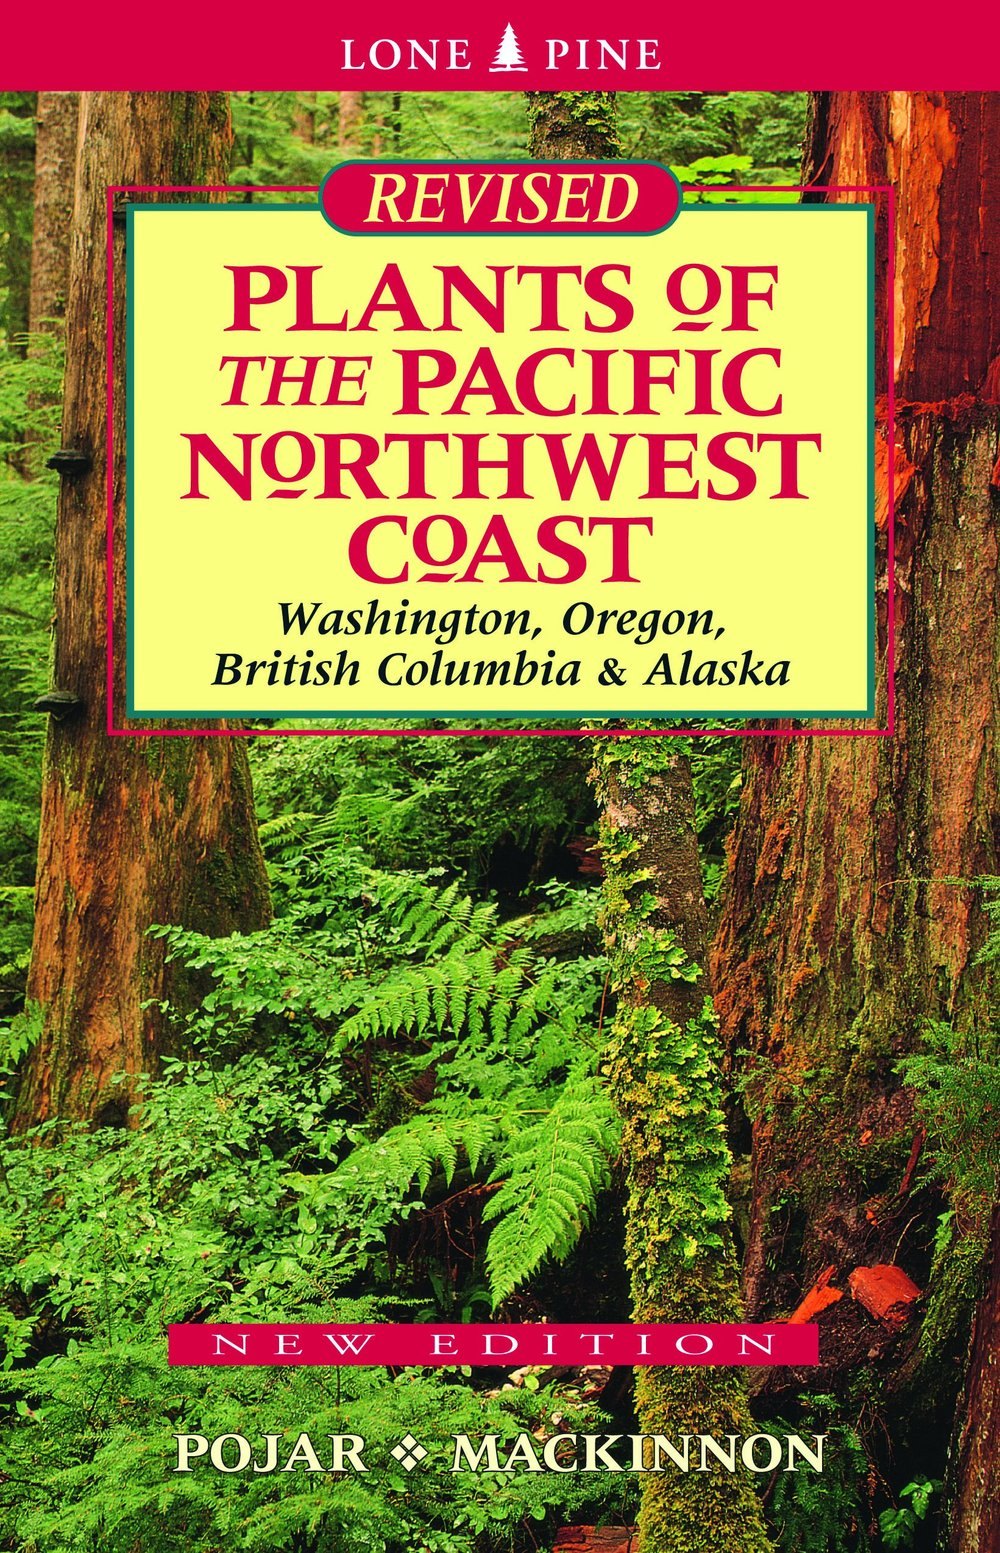 plants of the pacific northwest coast.jpg